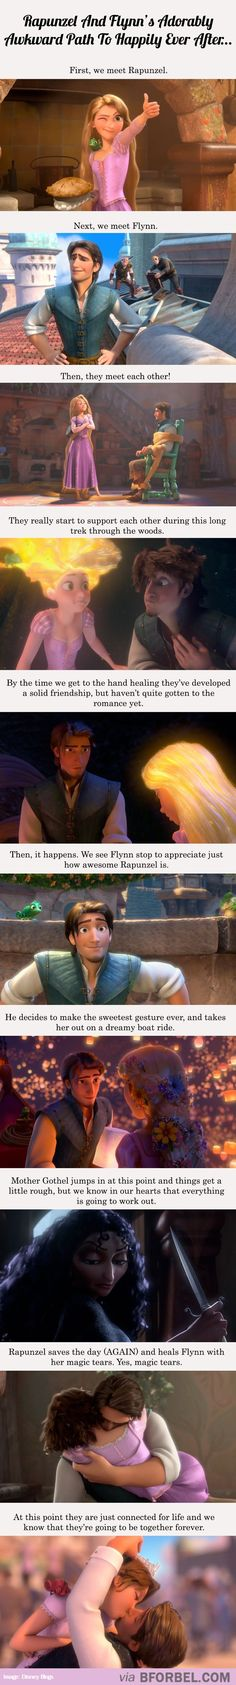 Rapunzel And Flynn's Adorably Awkward Path To Happily Ever After…